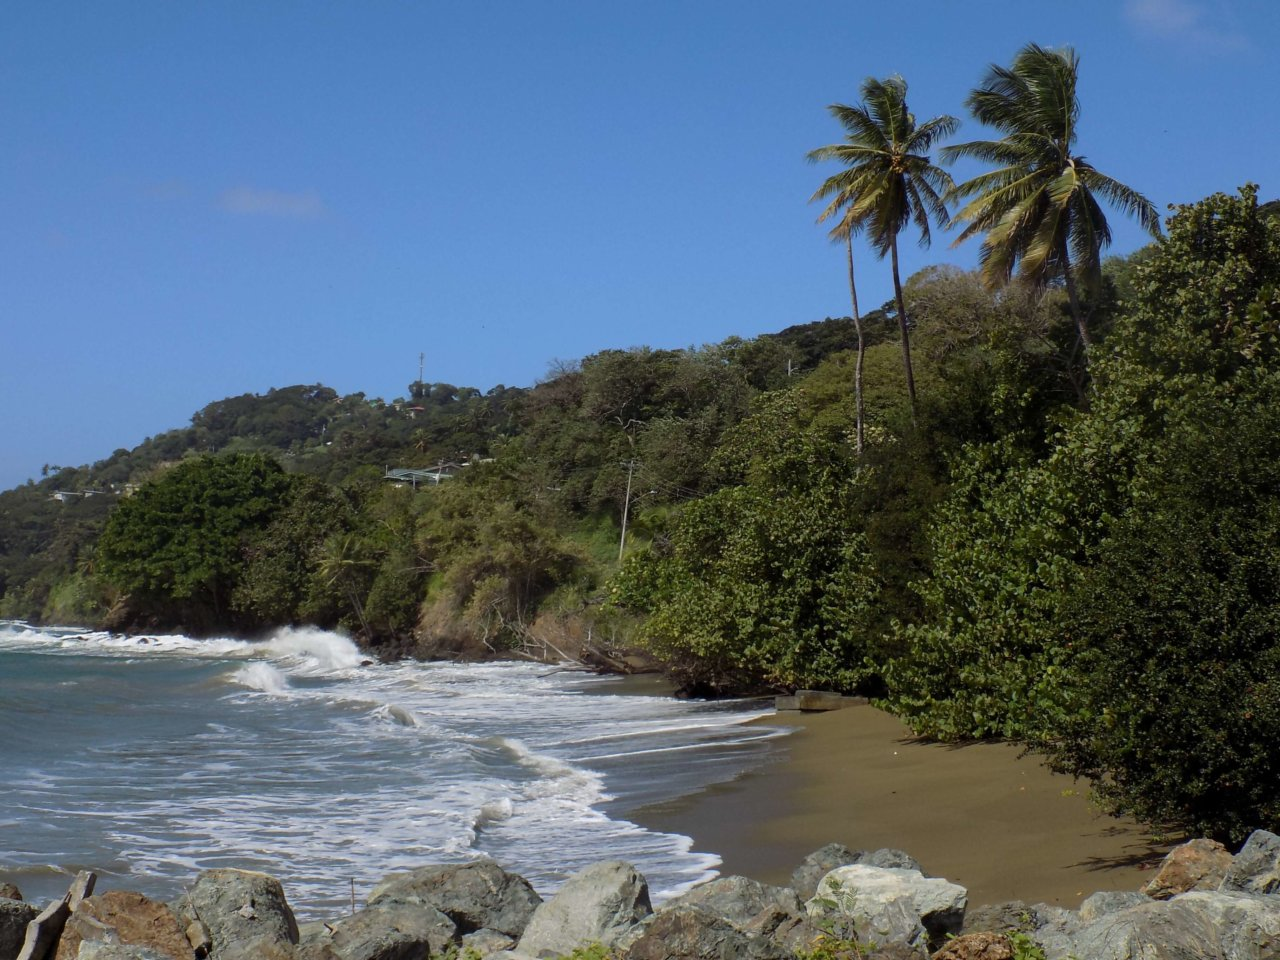 Exploring eastern Tobago - driving the coast road from Scarborough round to Castara